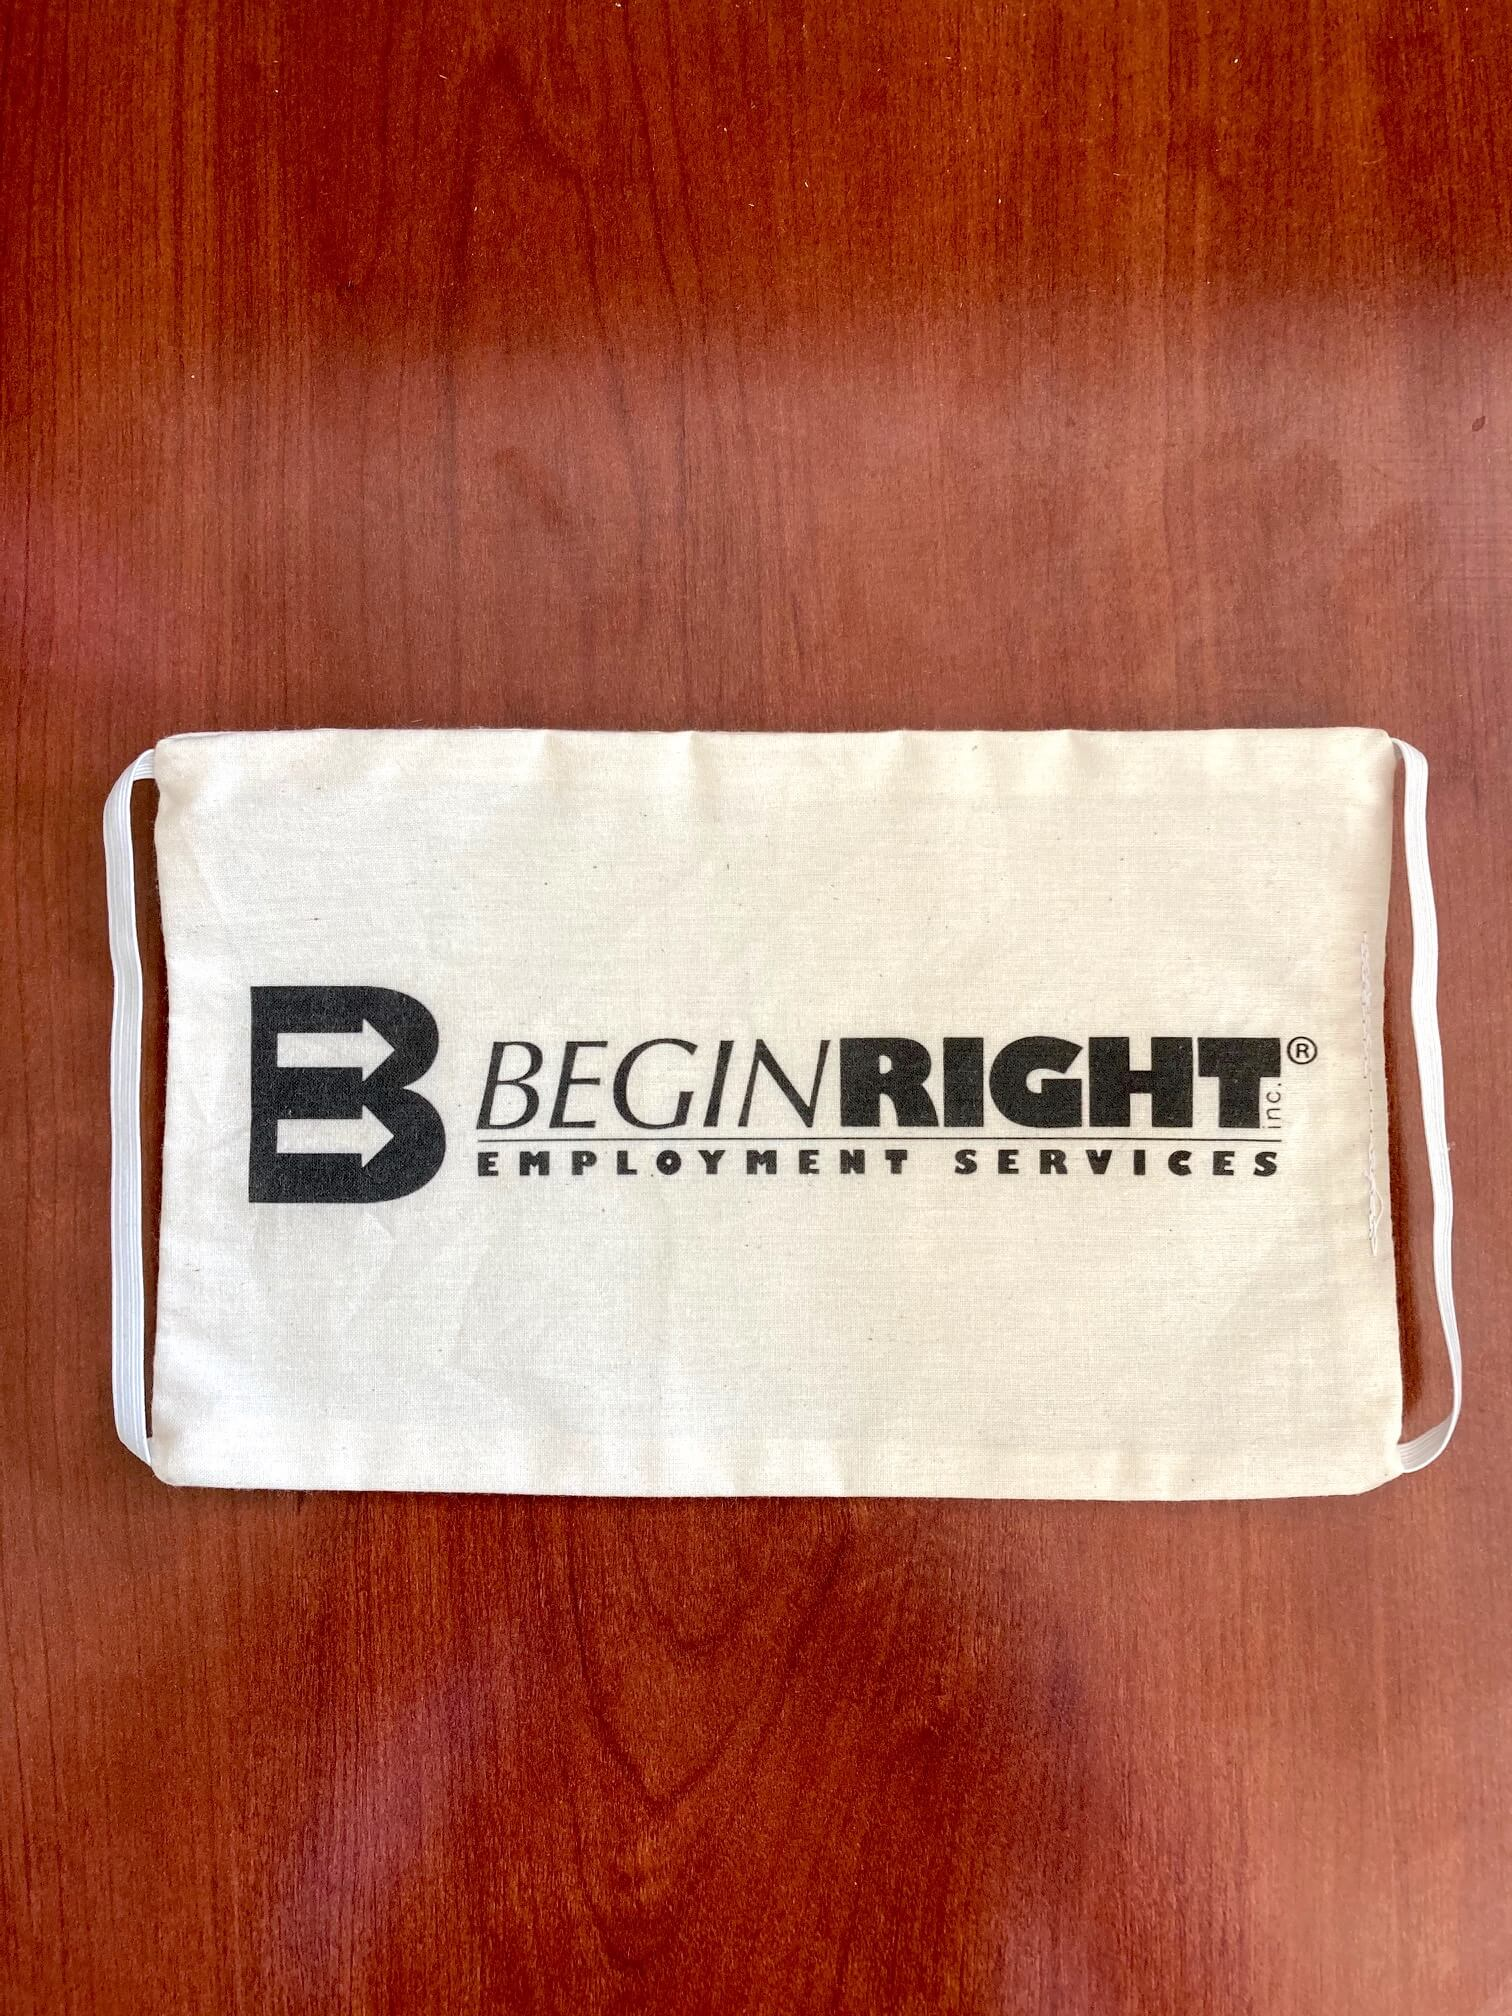 BeginRight Employment Services used its Roland DG BT-12 to print its logo on cloth masks like this one.